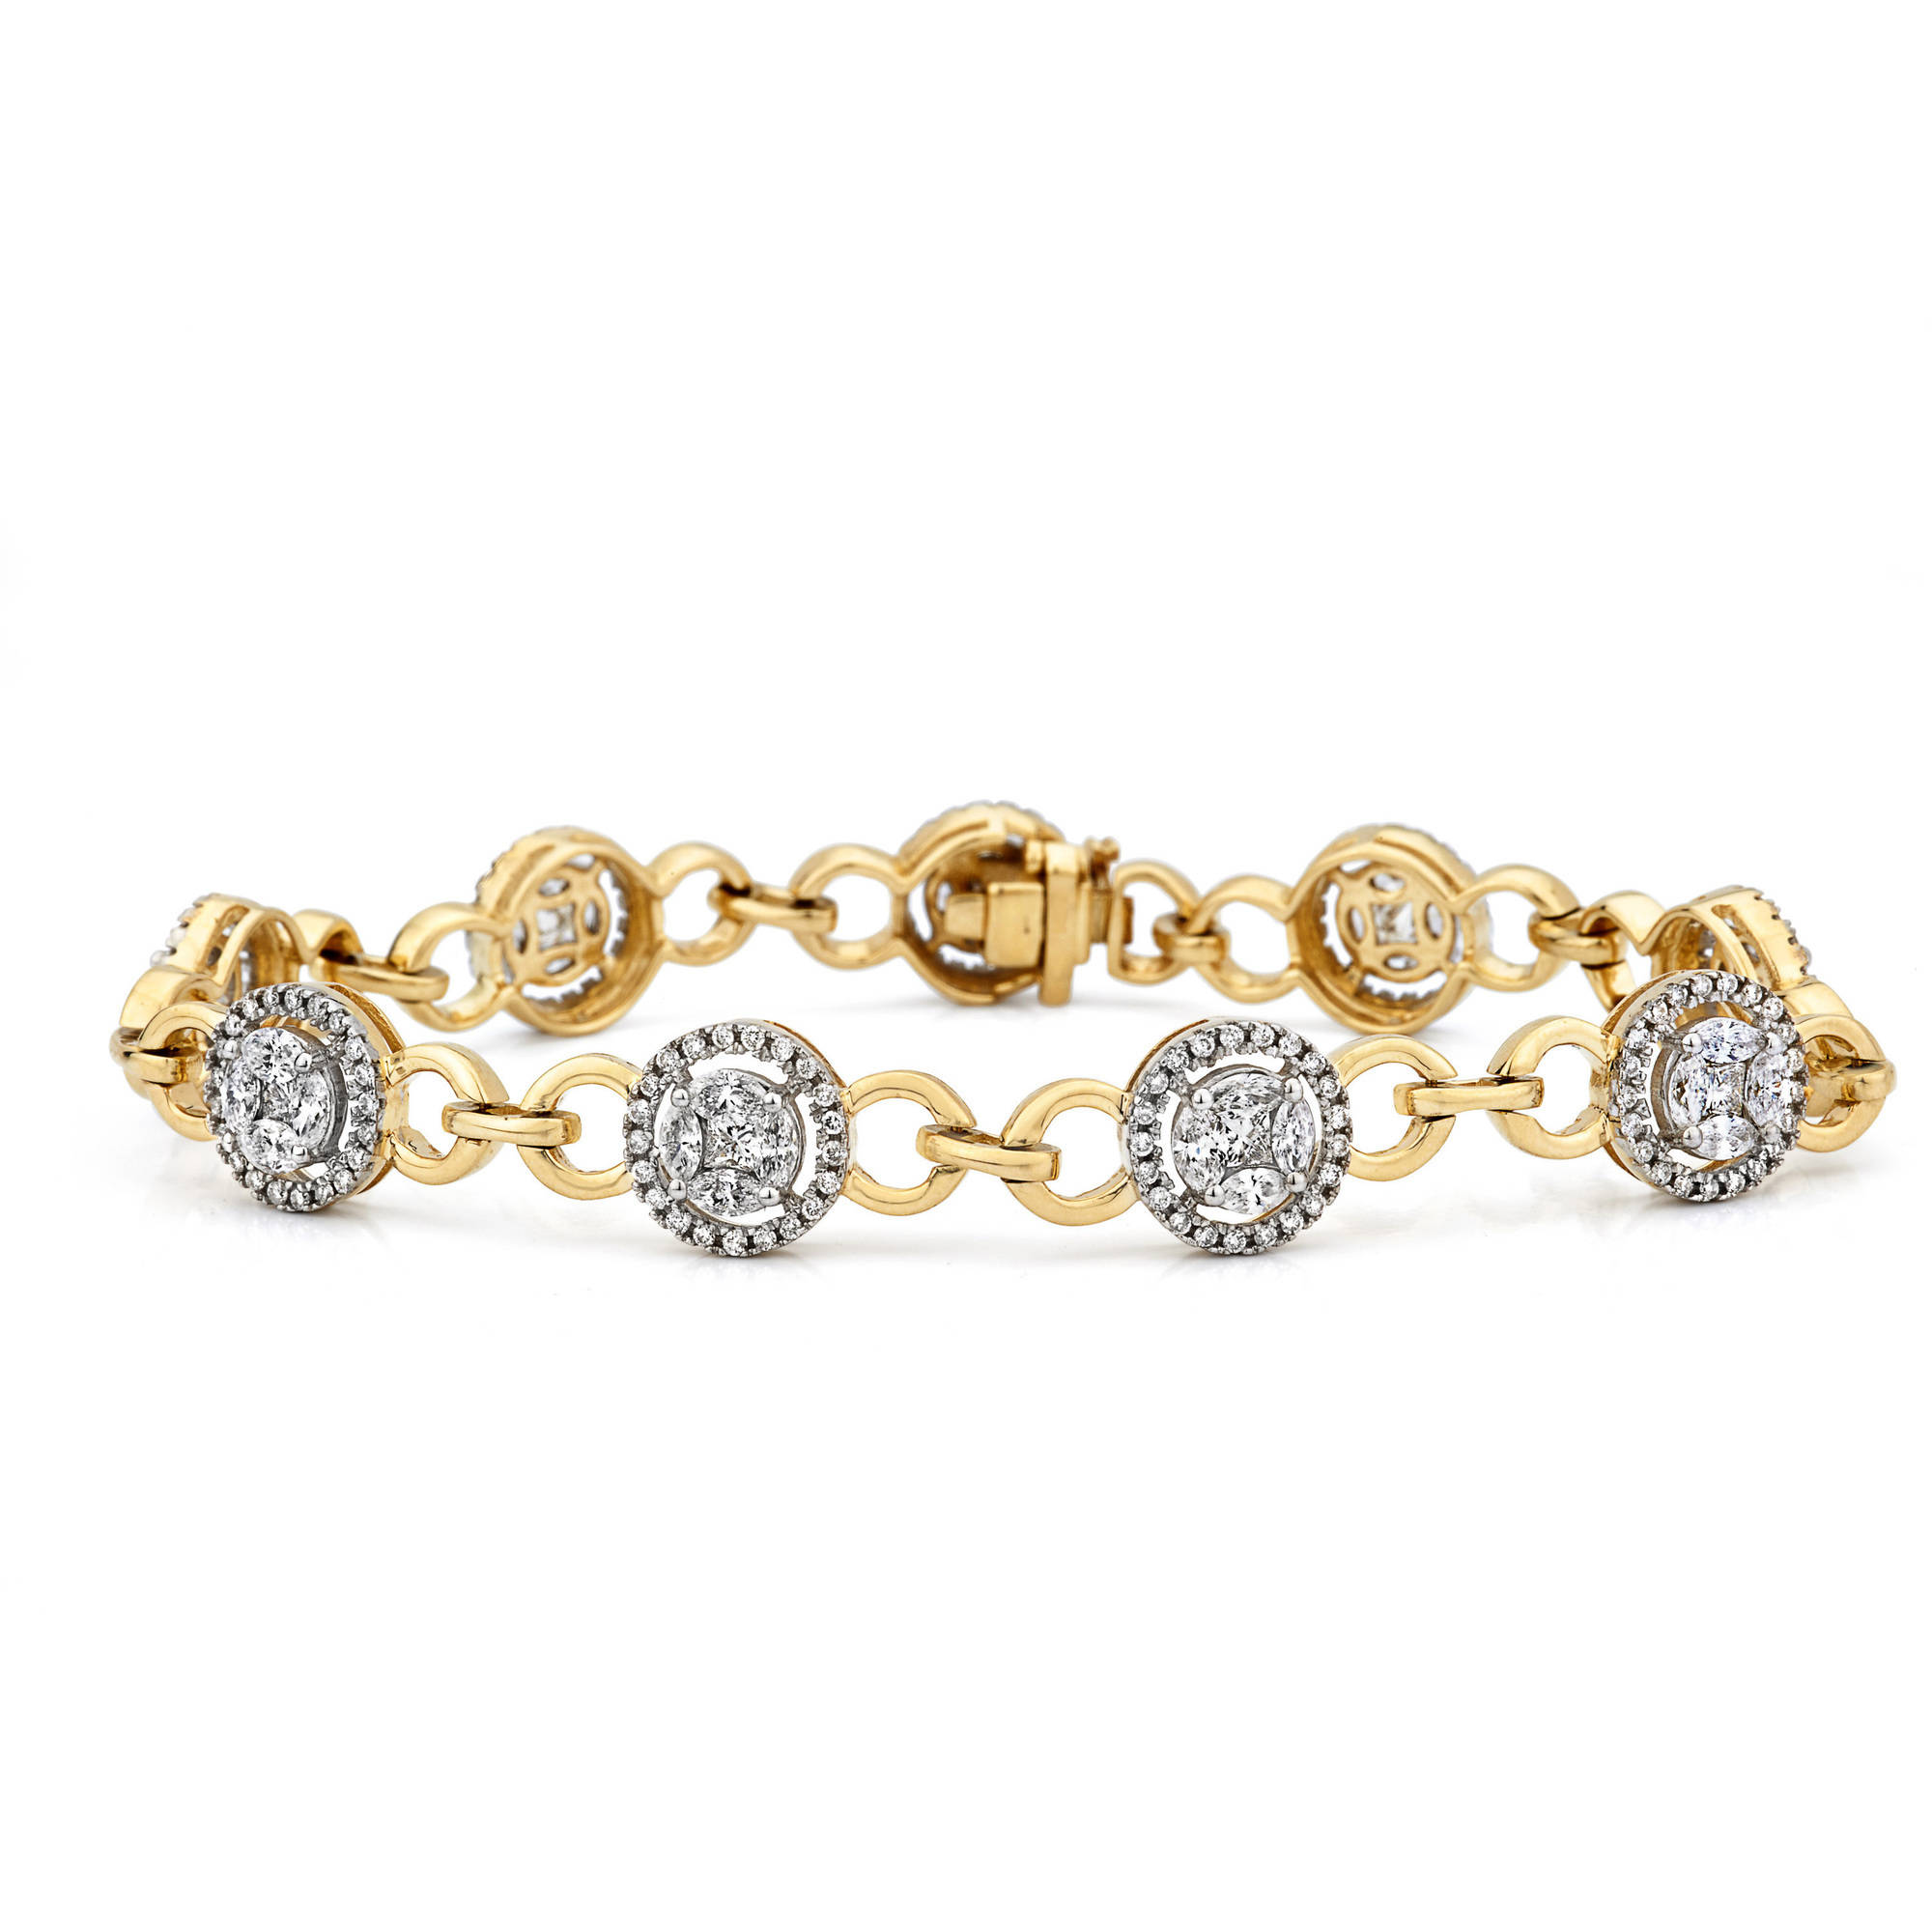 3 Carat T.W. Marquise- and Princess-Cut Diamond 14kt Yellow Gold Bracelet with Circular Clusters by Generic